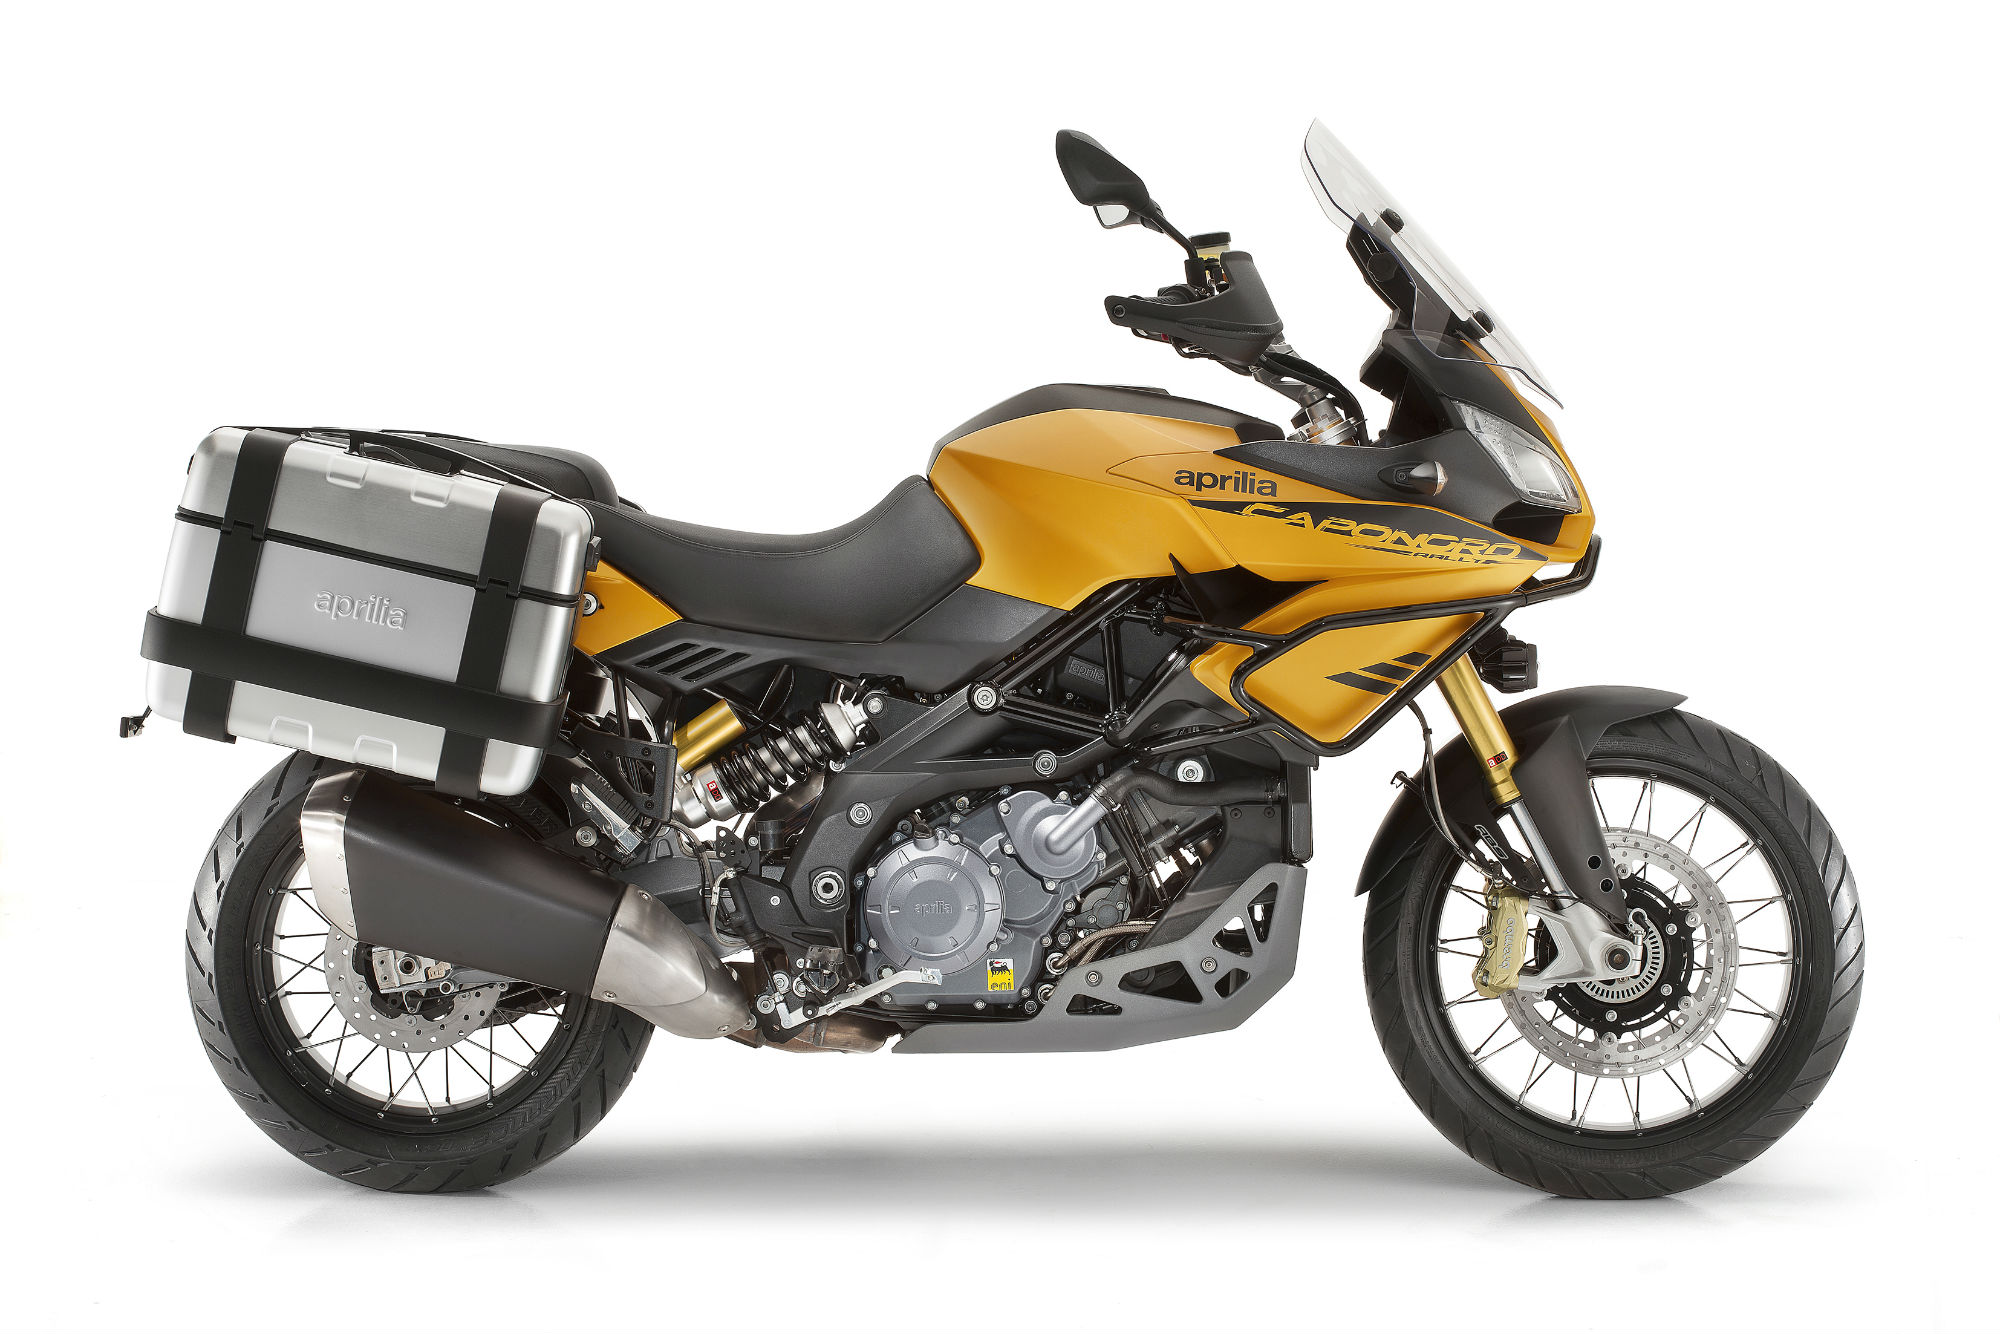 First ride: Aprilia Caponord 1200 Rally review